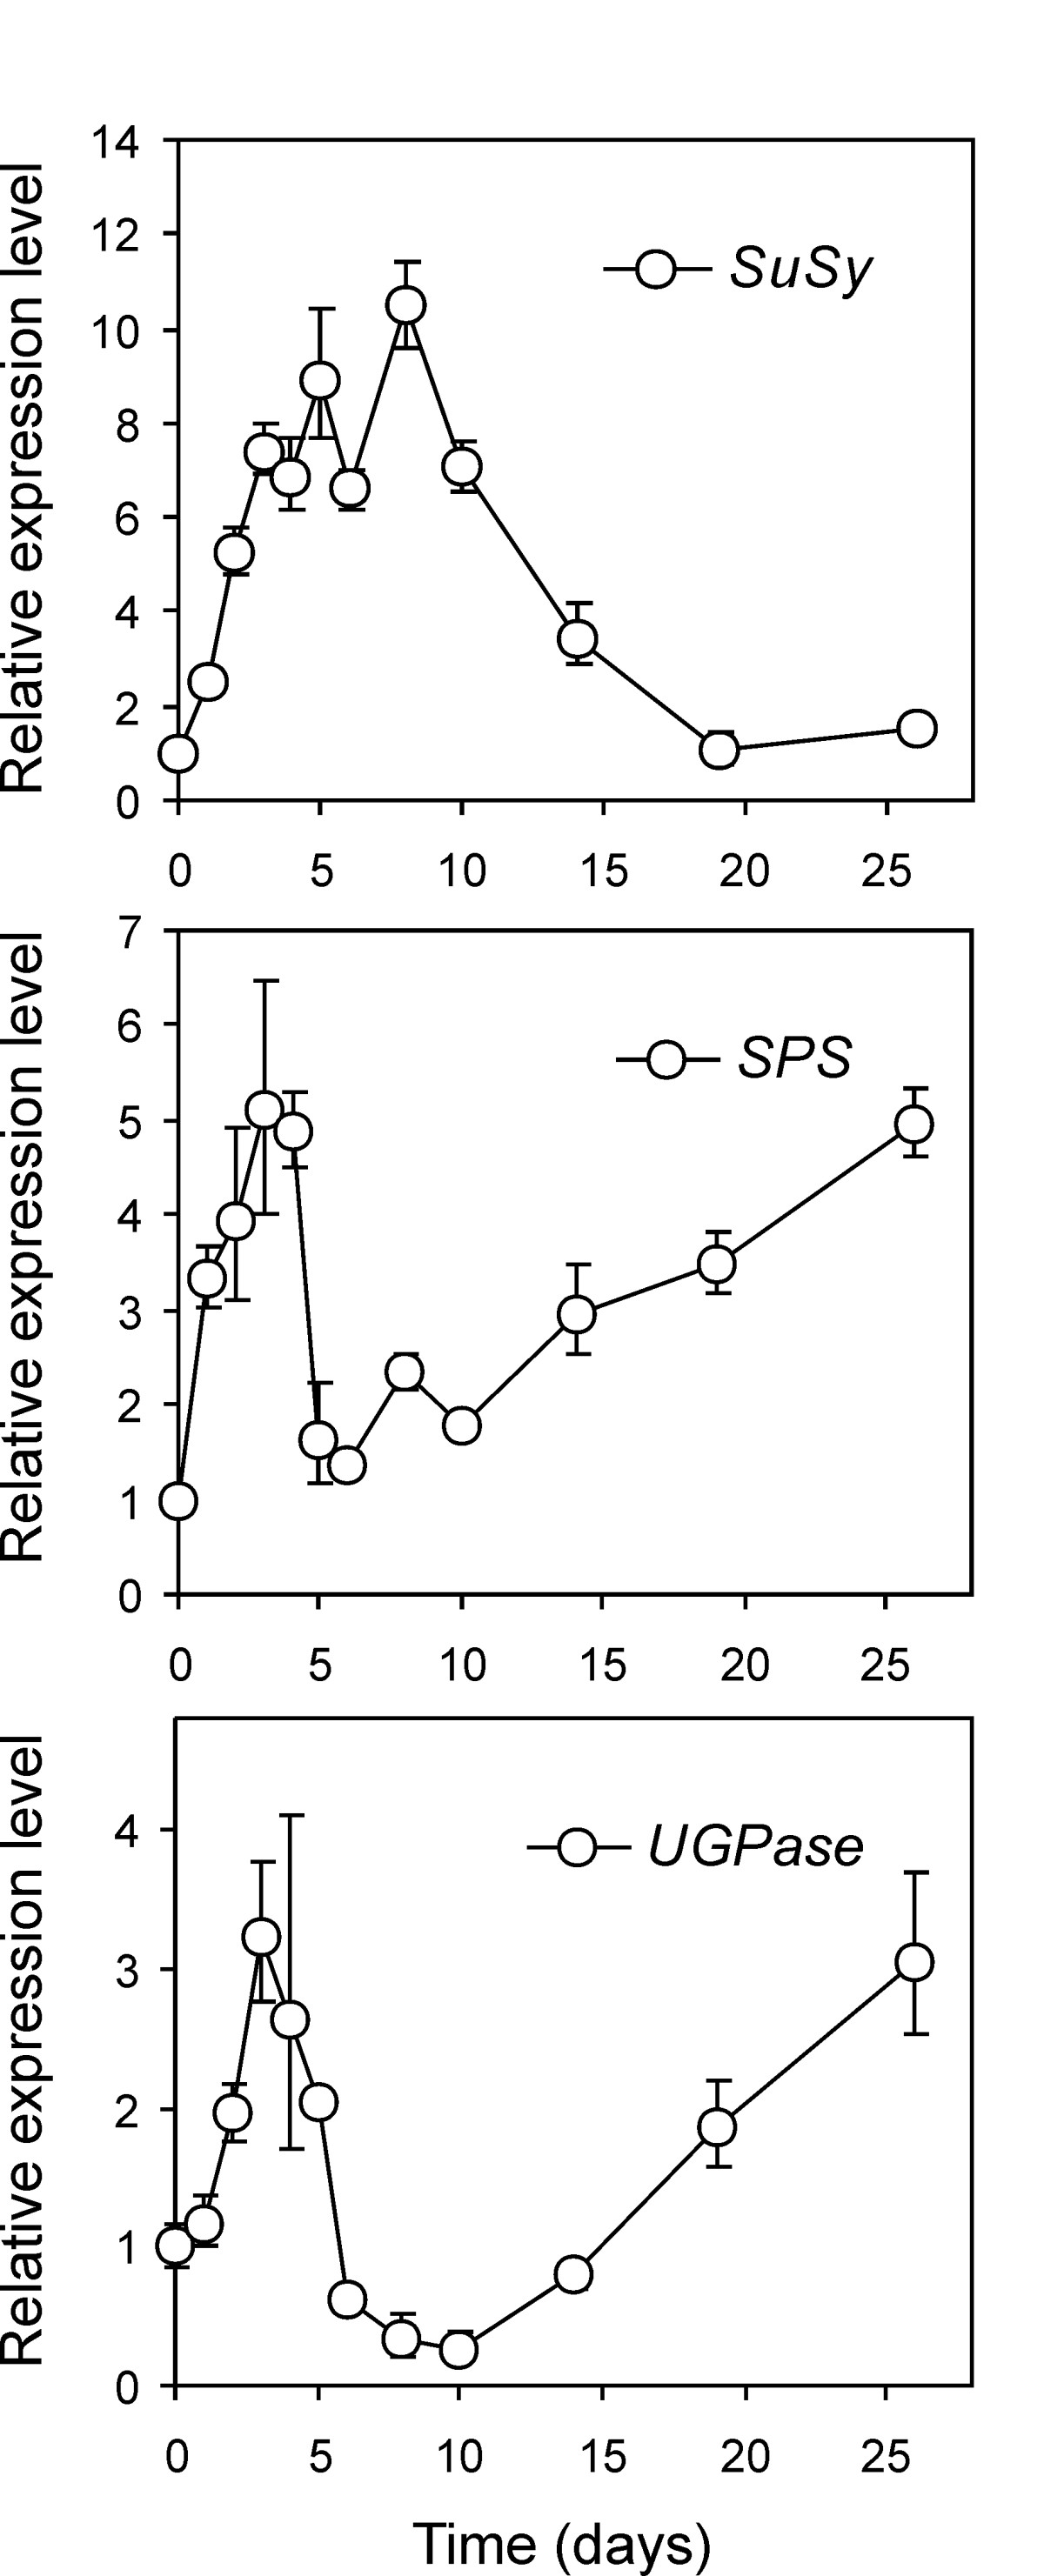 http://static-content.springer.com/image/art%3A10.1186%2F1471-2164-9-176/MediaObjects/12864_2007_Article_1369_Fig7_HTML.jpg